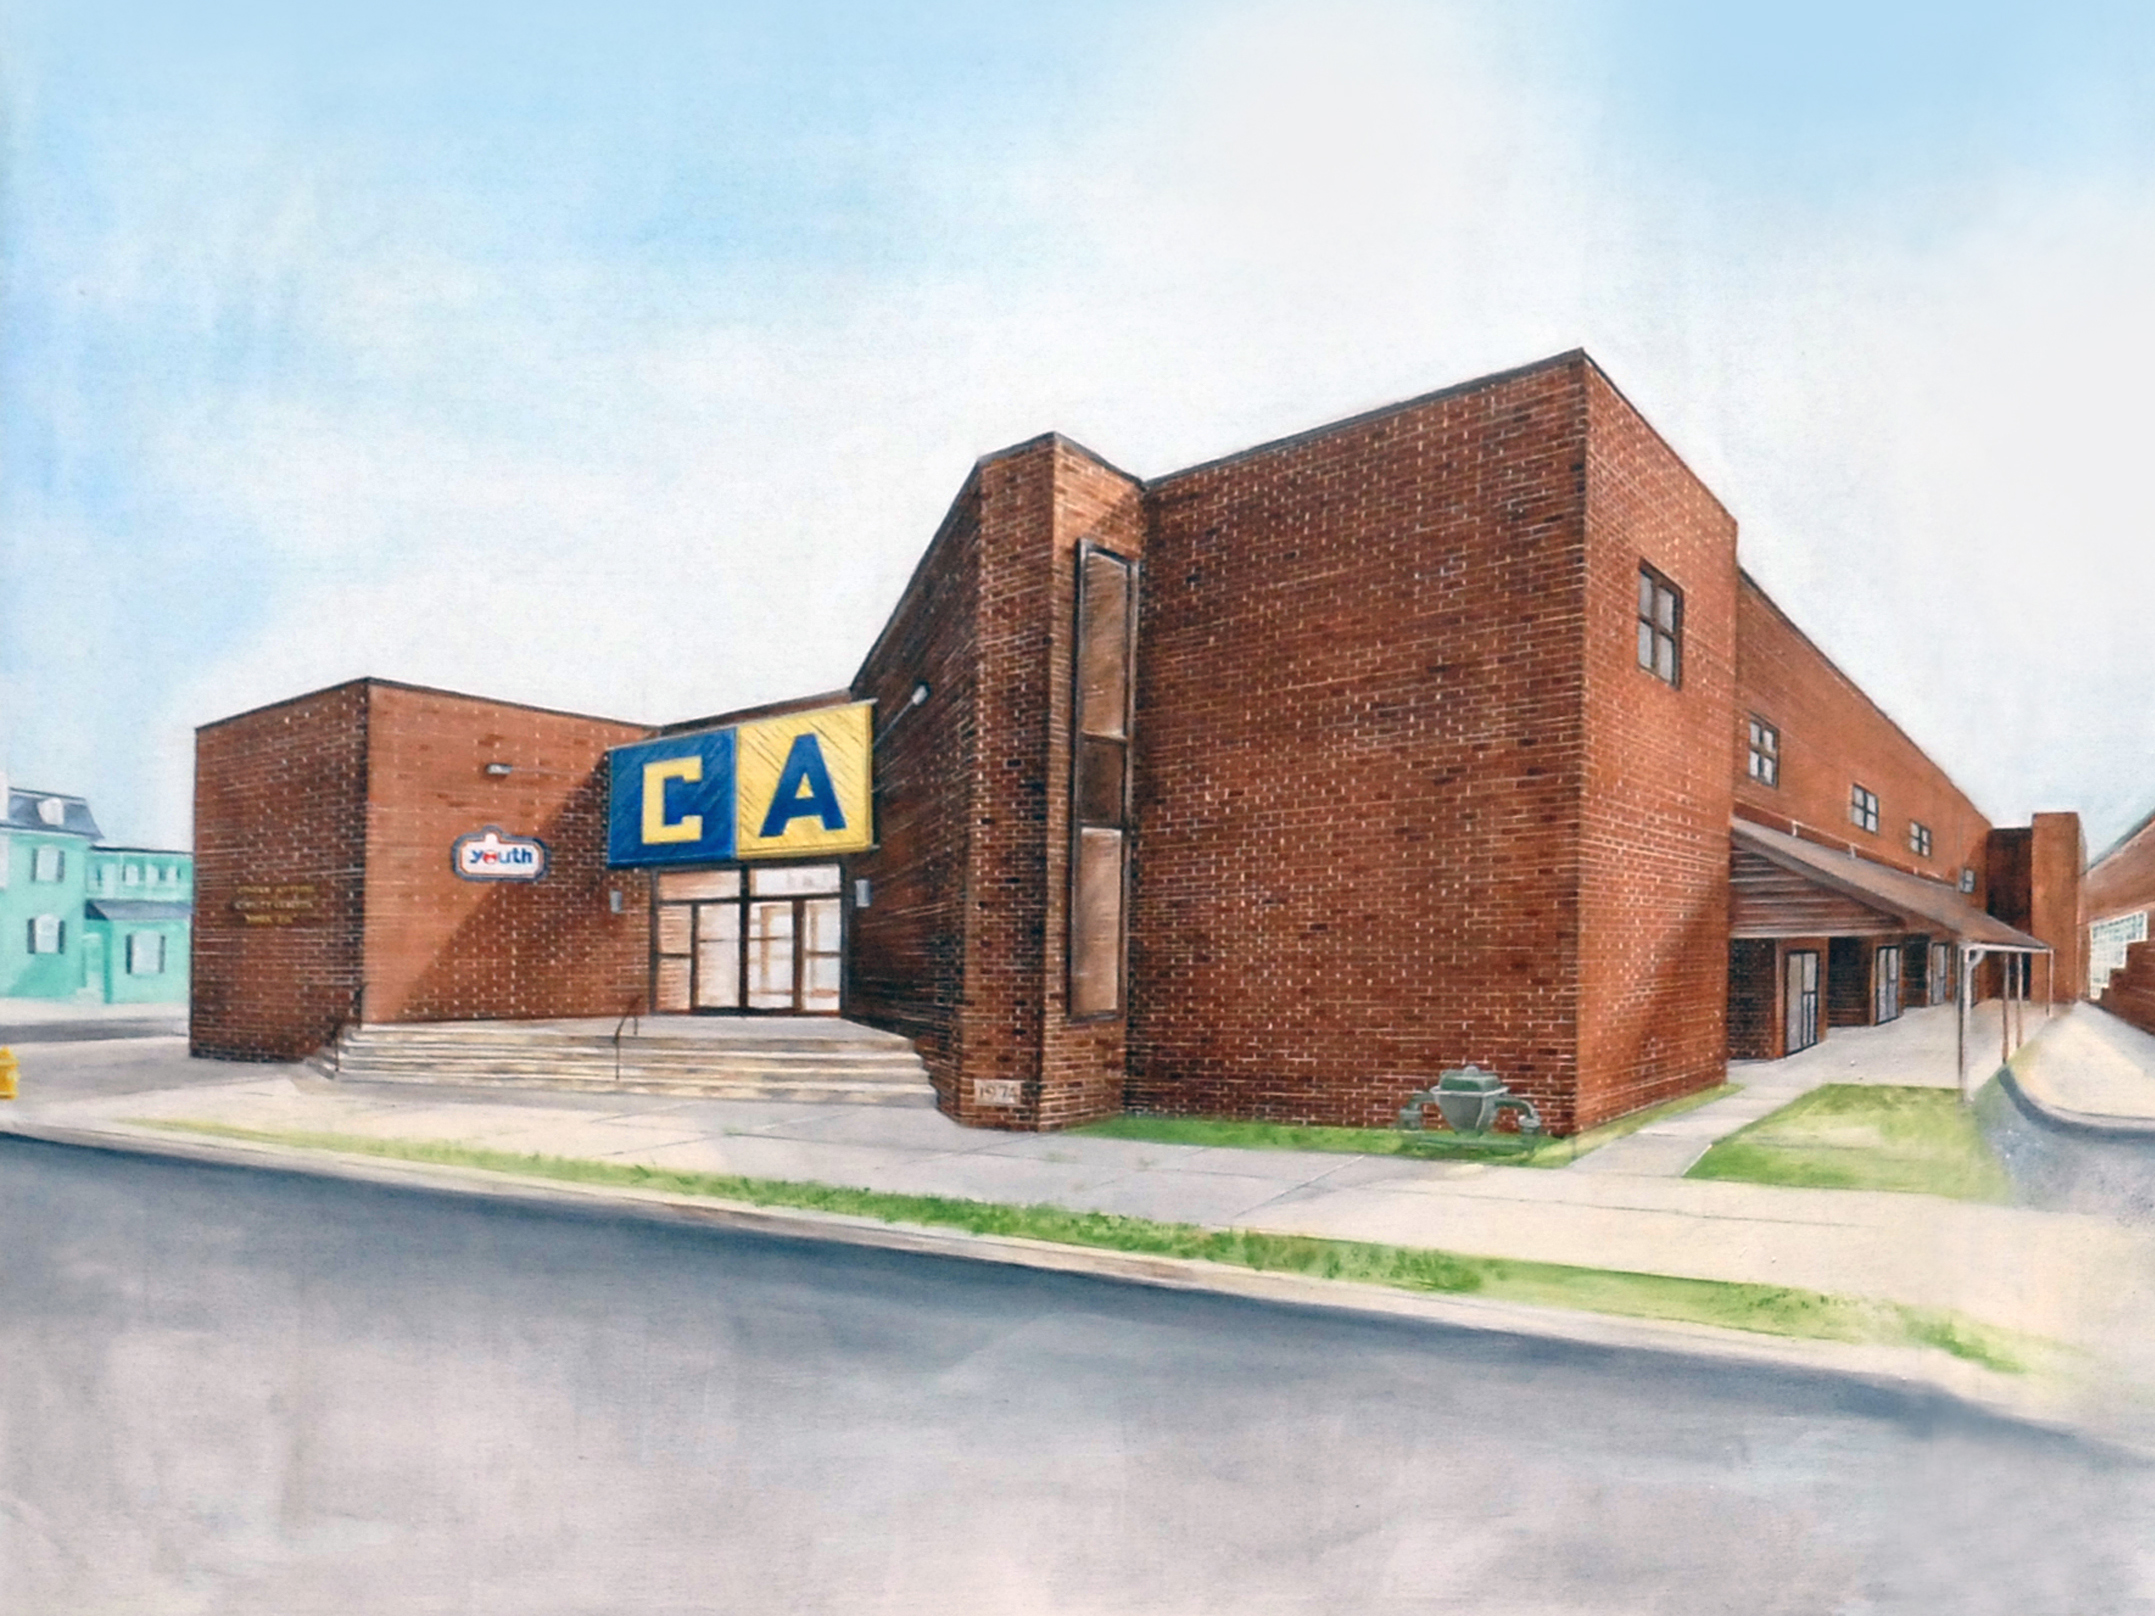 http://crispusattucks.org/wp-content/uploads/2018/01/Artist-Rendition-of-the-new-CA-Center-1.jpg